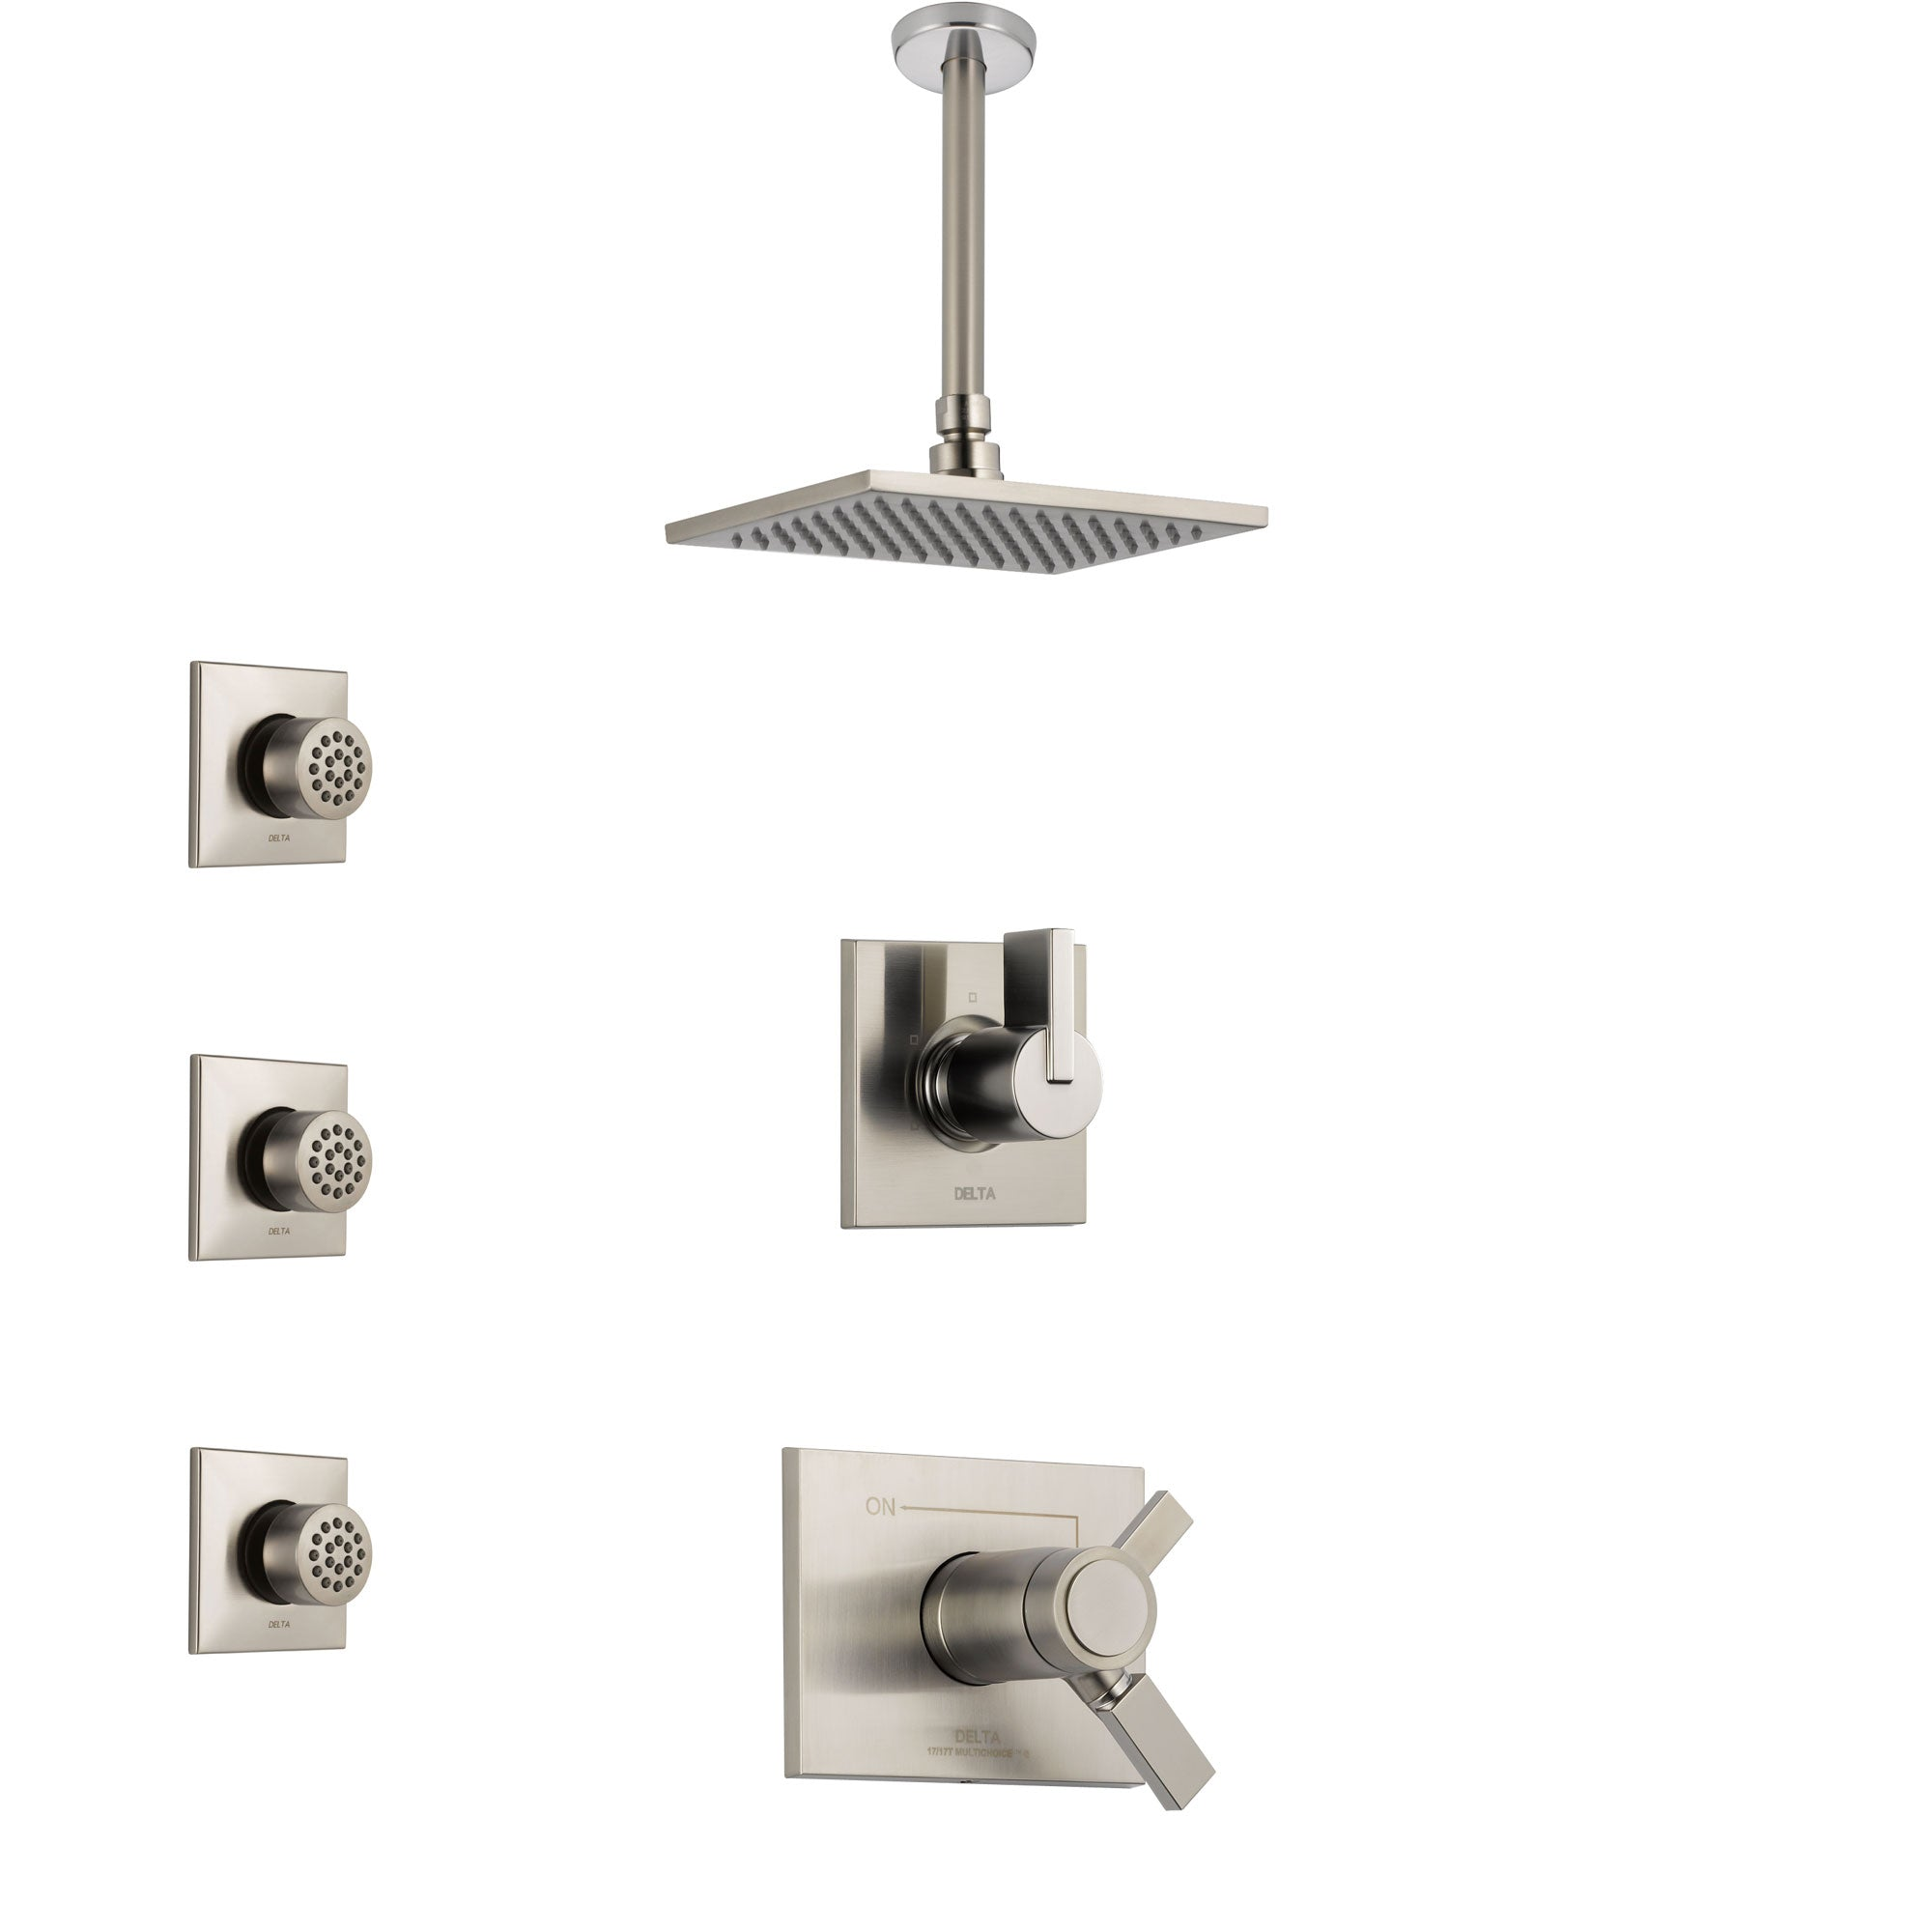 Delta Vero Dual Thermostatic Control Handle Stainless Steel Finish Shower System, Diverter, Ceiling Mount Showerhead, and 3 Body Sprays SS17T531SS5